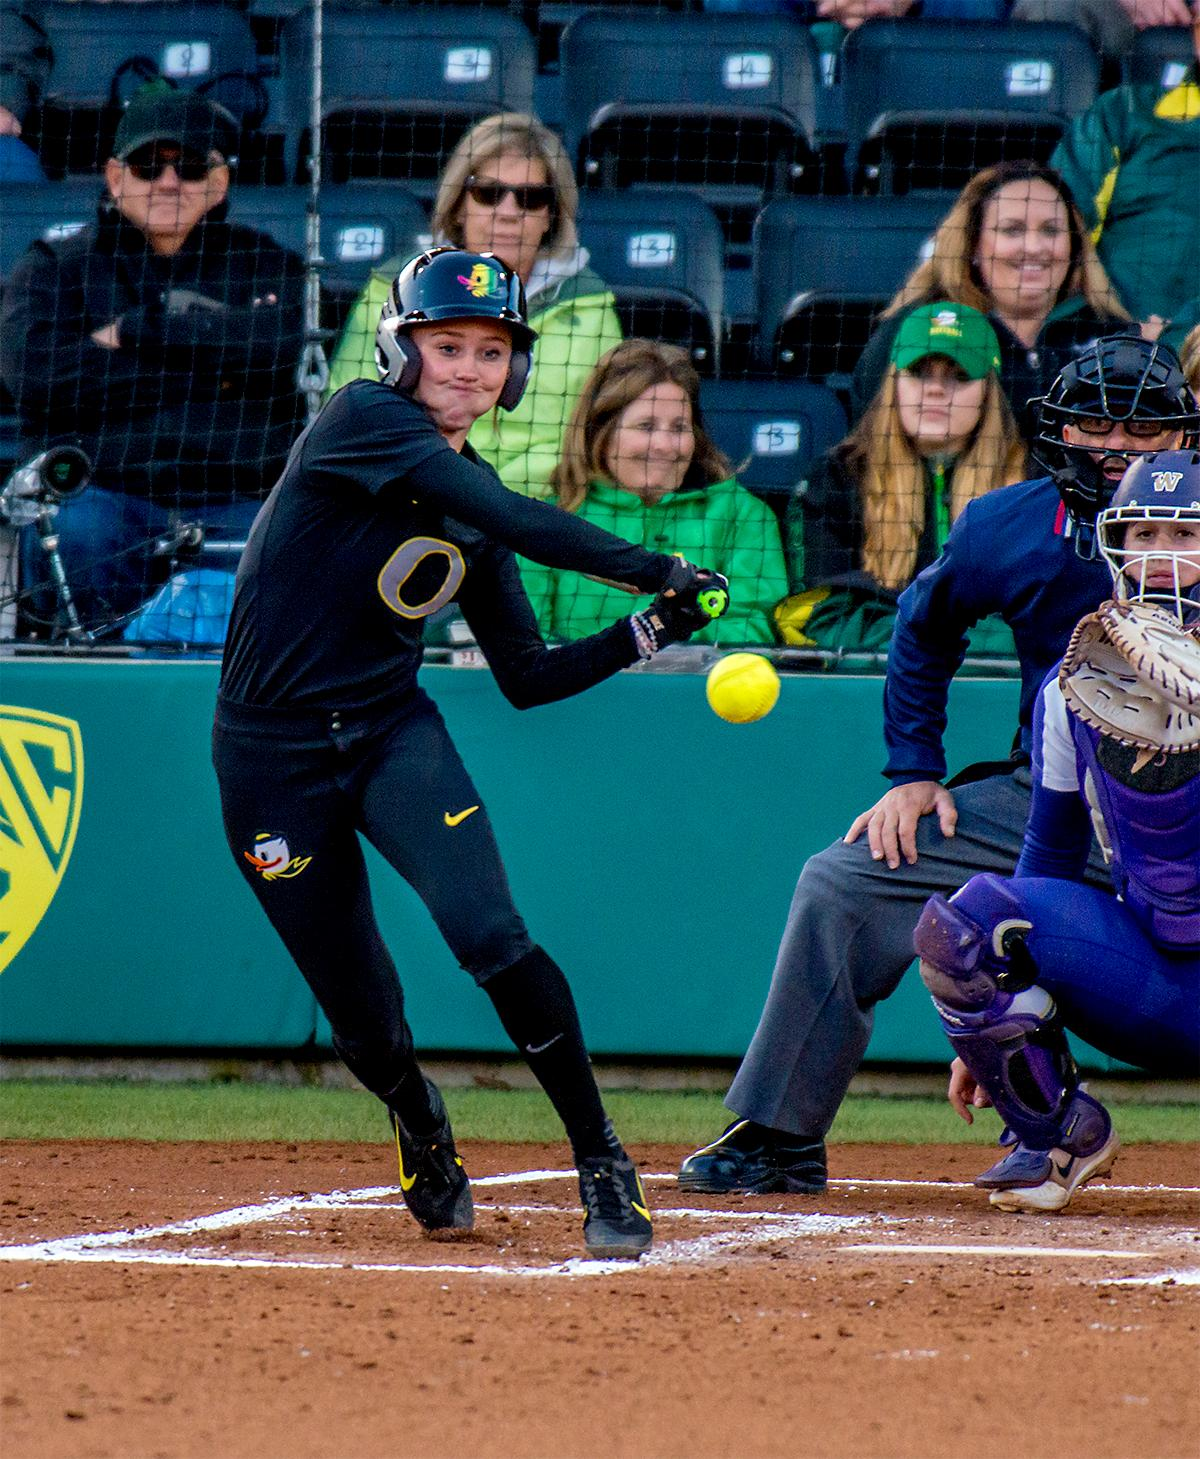 The Duck's Alexis Mack (#10) keeps her eyes on the ball as she goes for the swing. In Game Two of a three-game series, the University of Oregon Ducks softball team defeated the University of Washington Huskies 4-1 Friday night in Jane Sanders Stadium. Danica Mercado (#2), Alexis Mack (#10) and Mia Camuso (#7) all scored in the win, Mack twice. The Ducks play the Huskies for the tie breaker on Saturday with the first pitch at noon. Photo by August Frank, Oregon News Lab